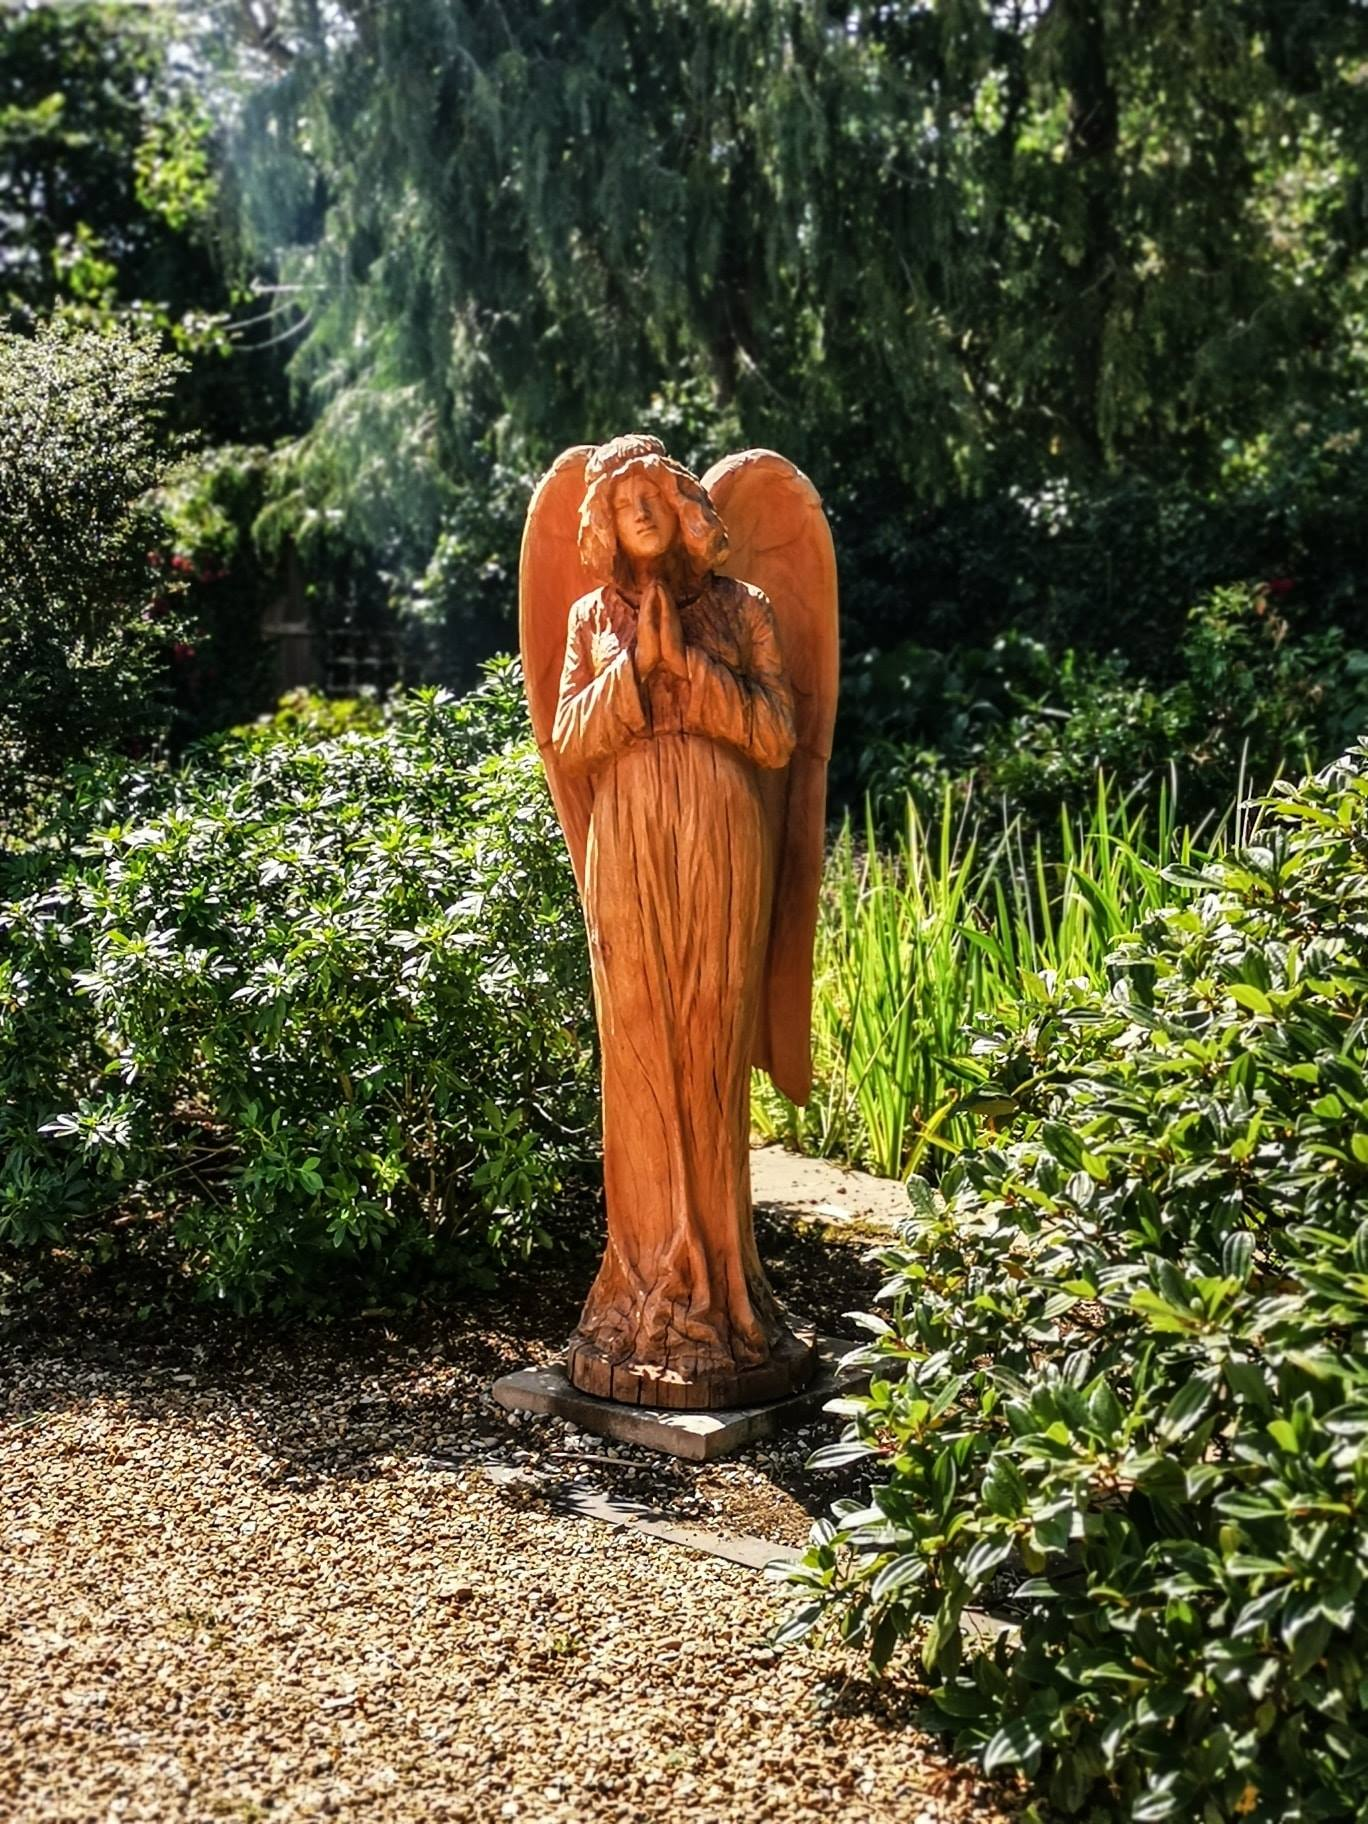 angel sculpture by simon o'rourke stands surrounded by greenery. The angel has 'praying hands' and a serene expression.